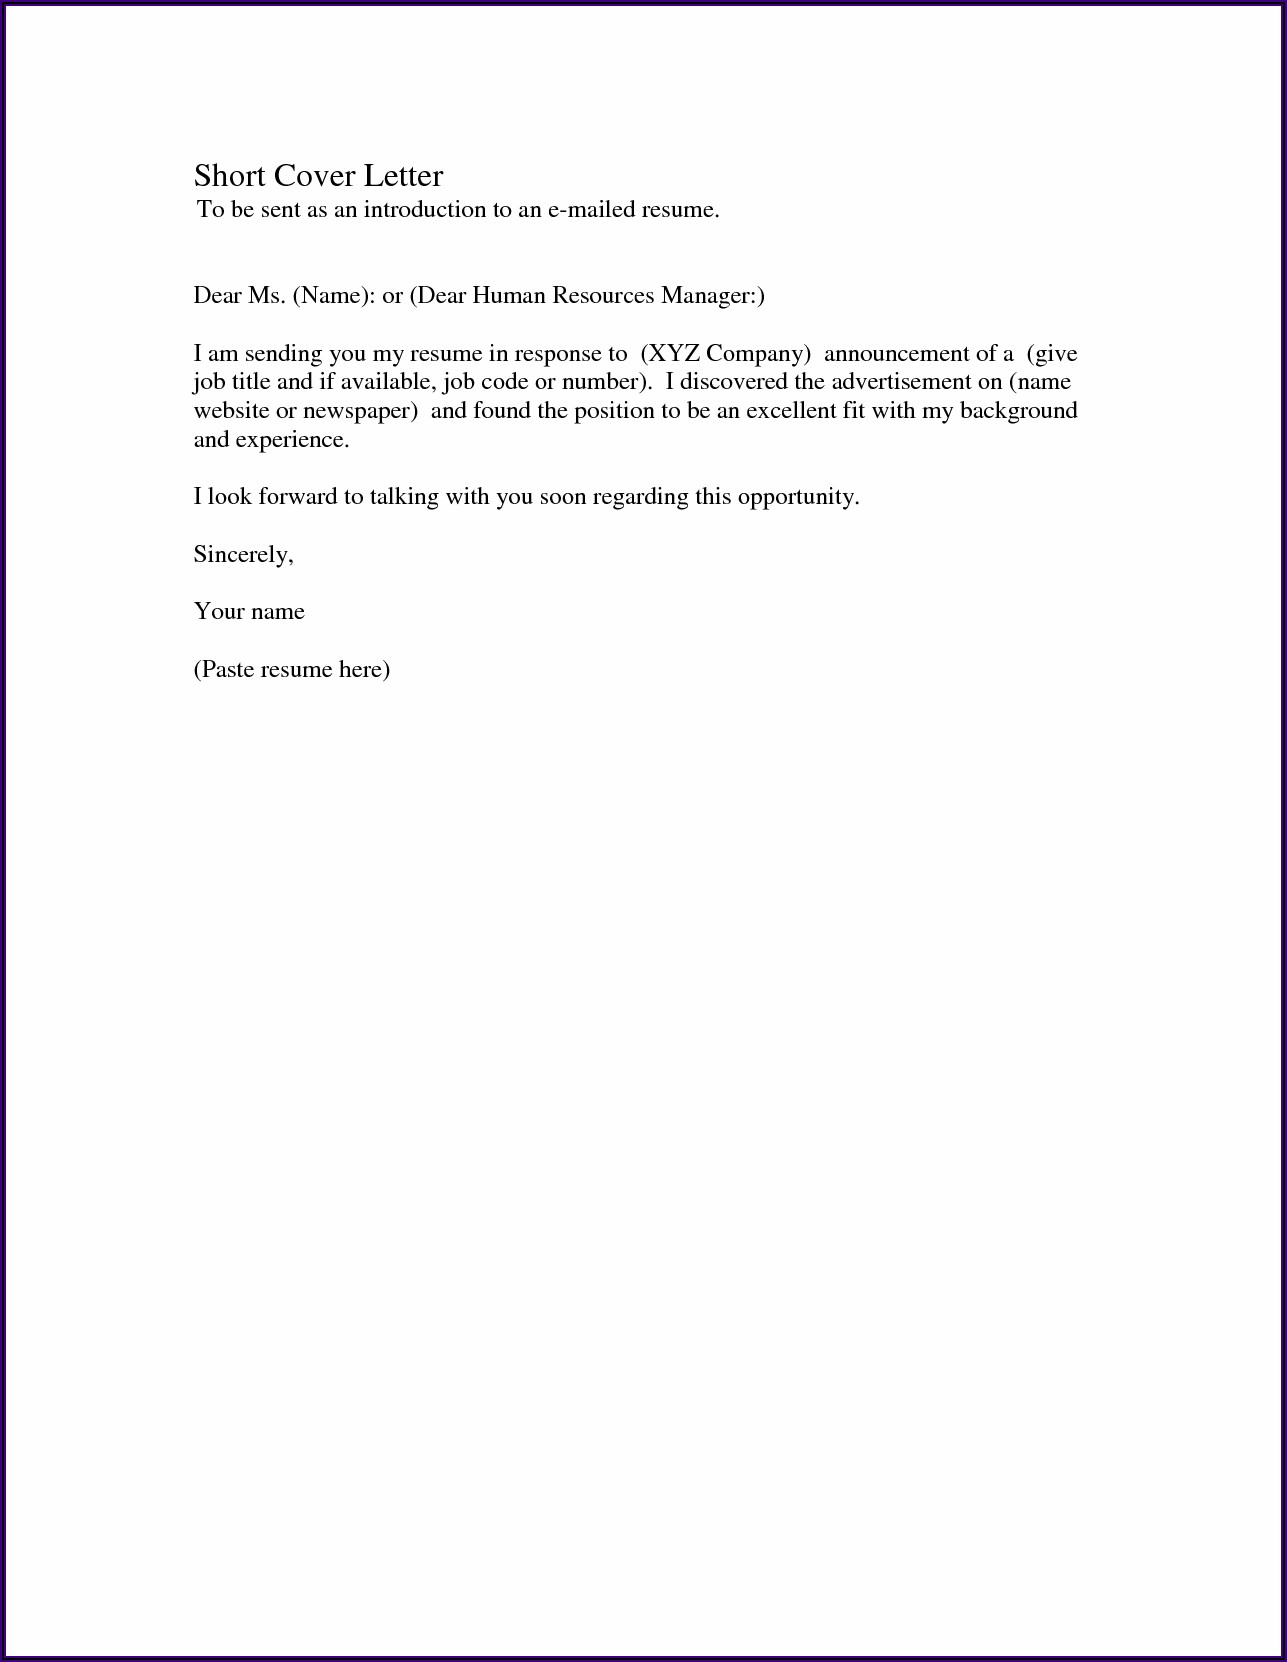 Examples Of Simple Cover Letters For Resumes